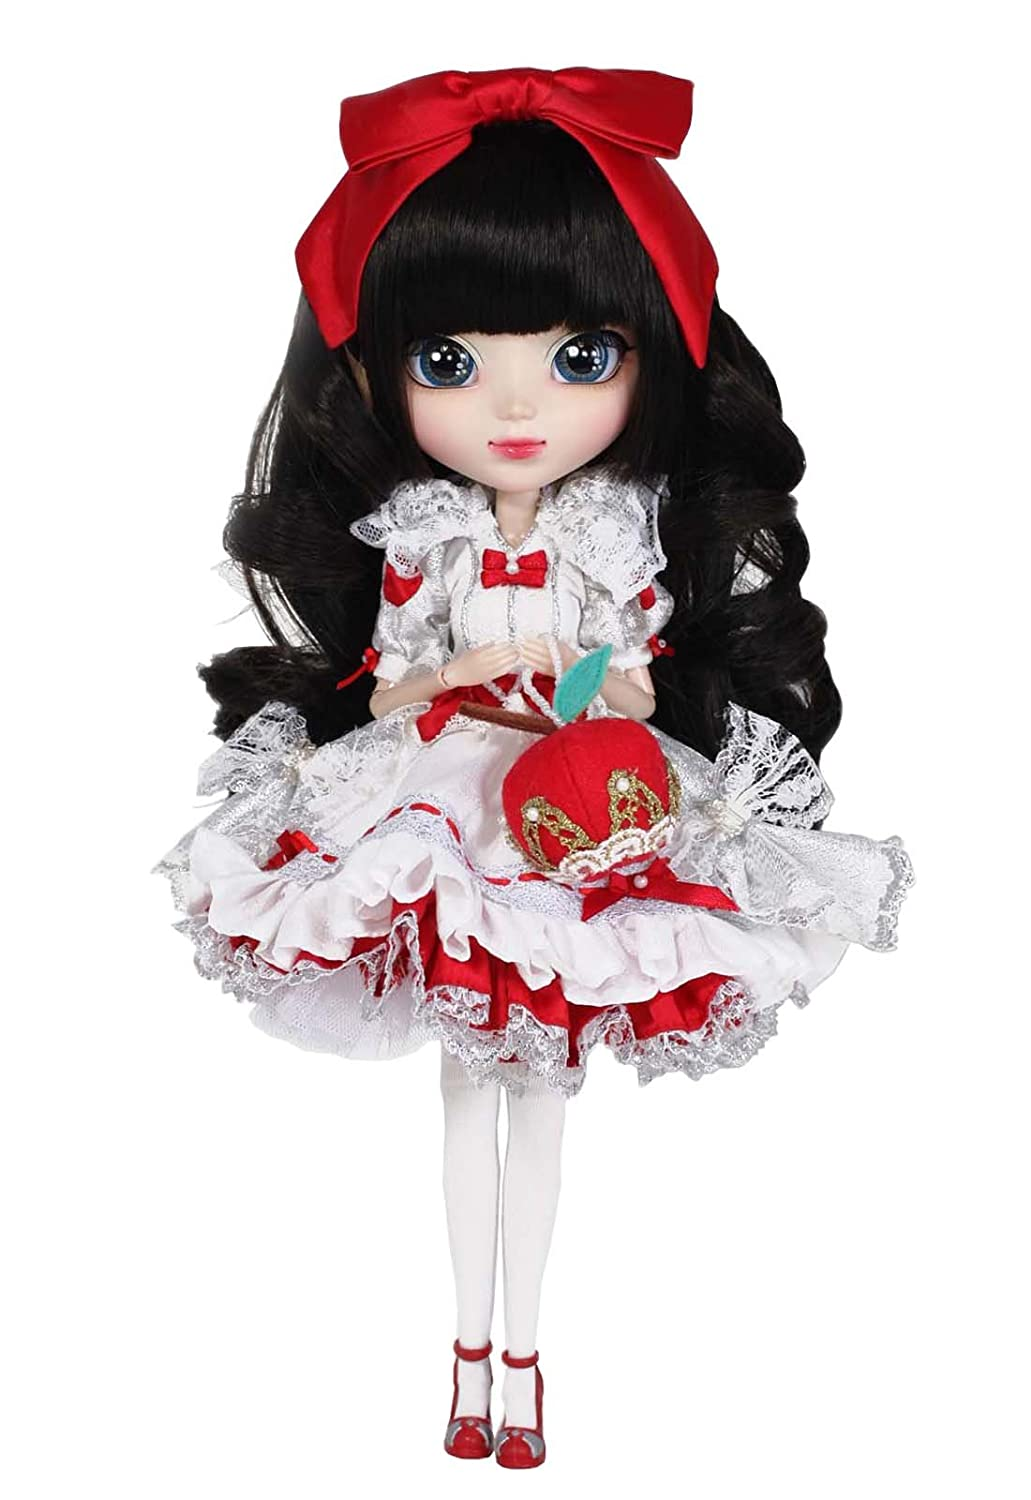 Pullip Dolls Amazon Pullip Dolls Snow White 12